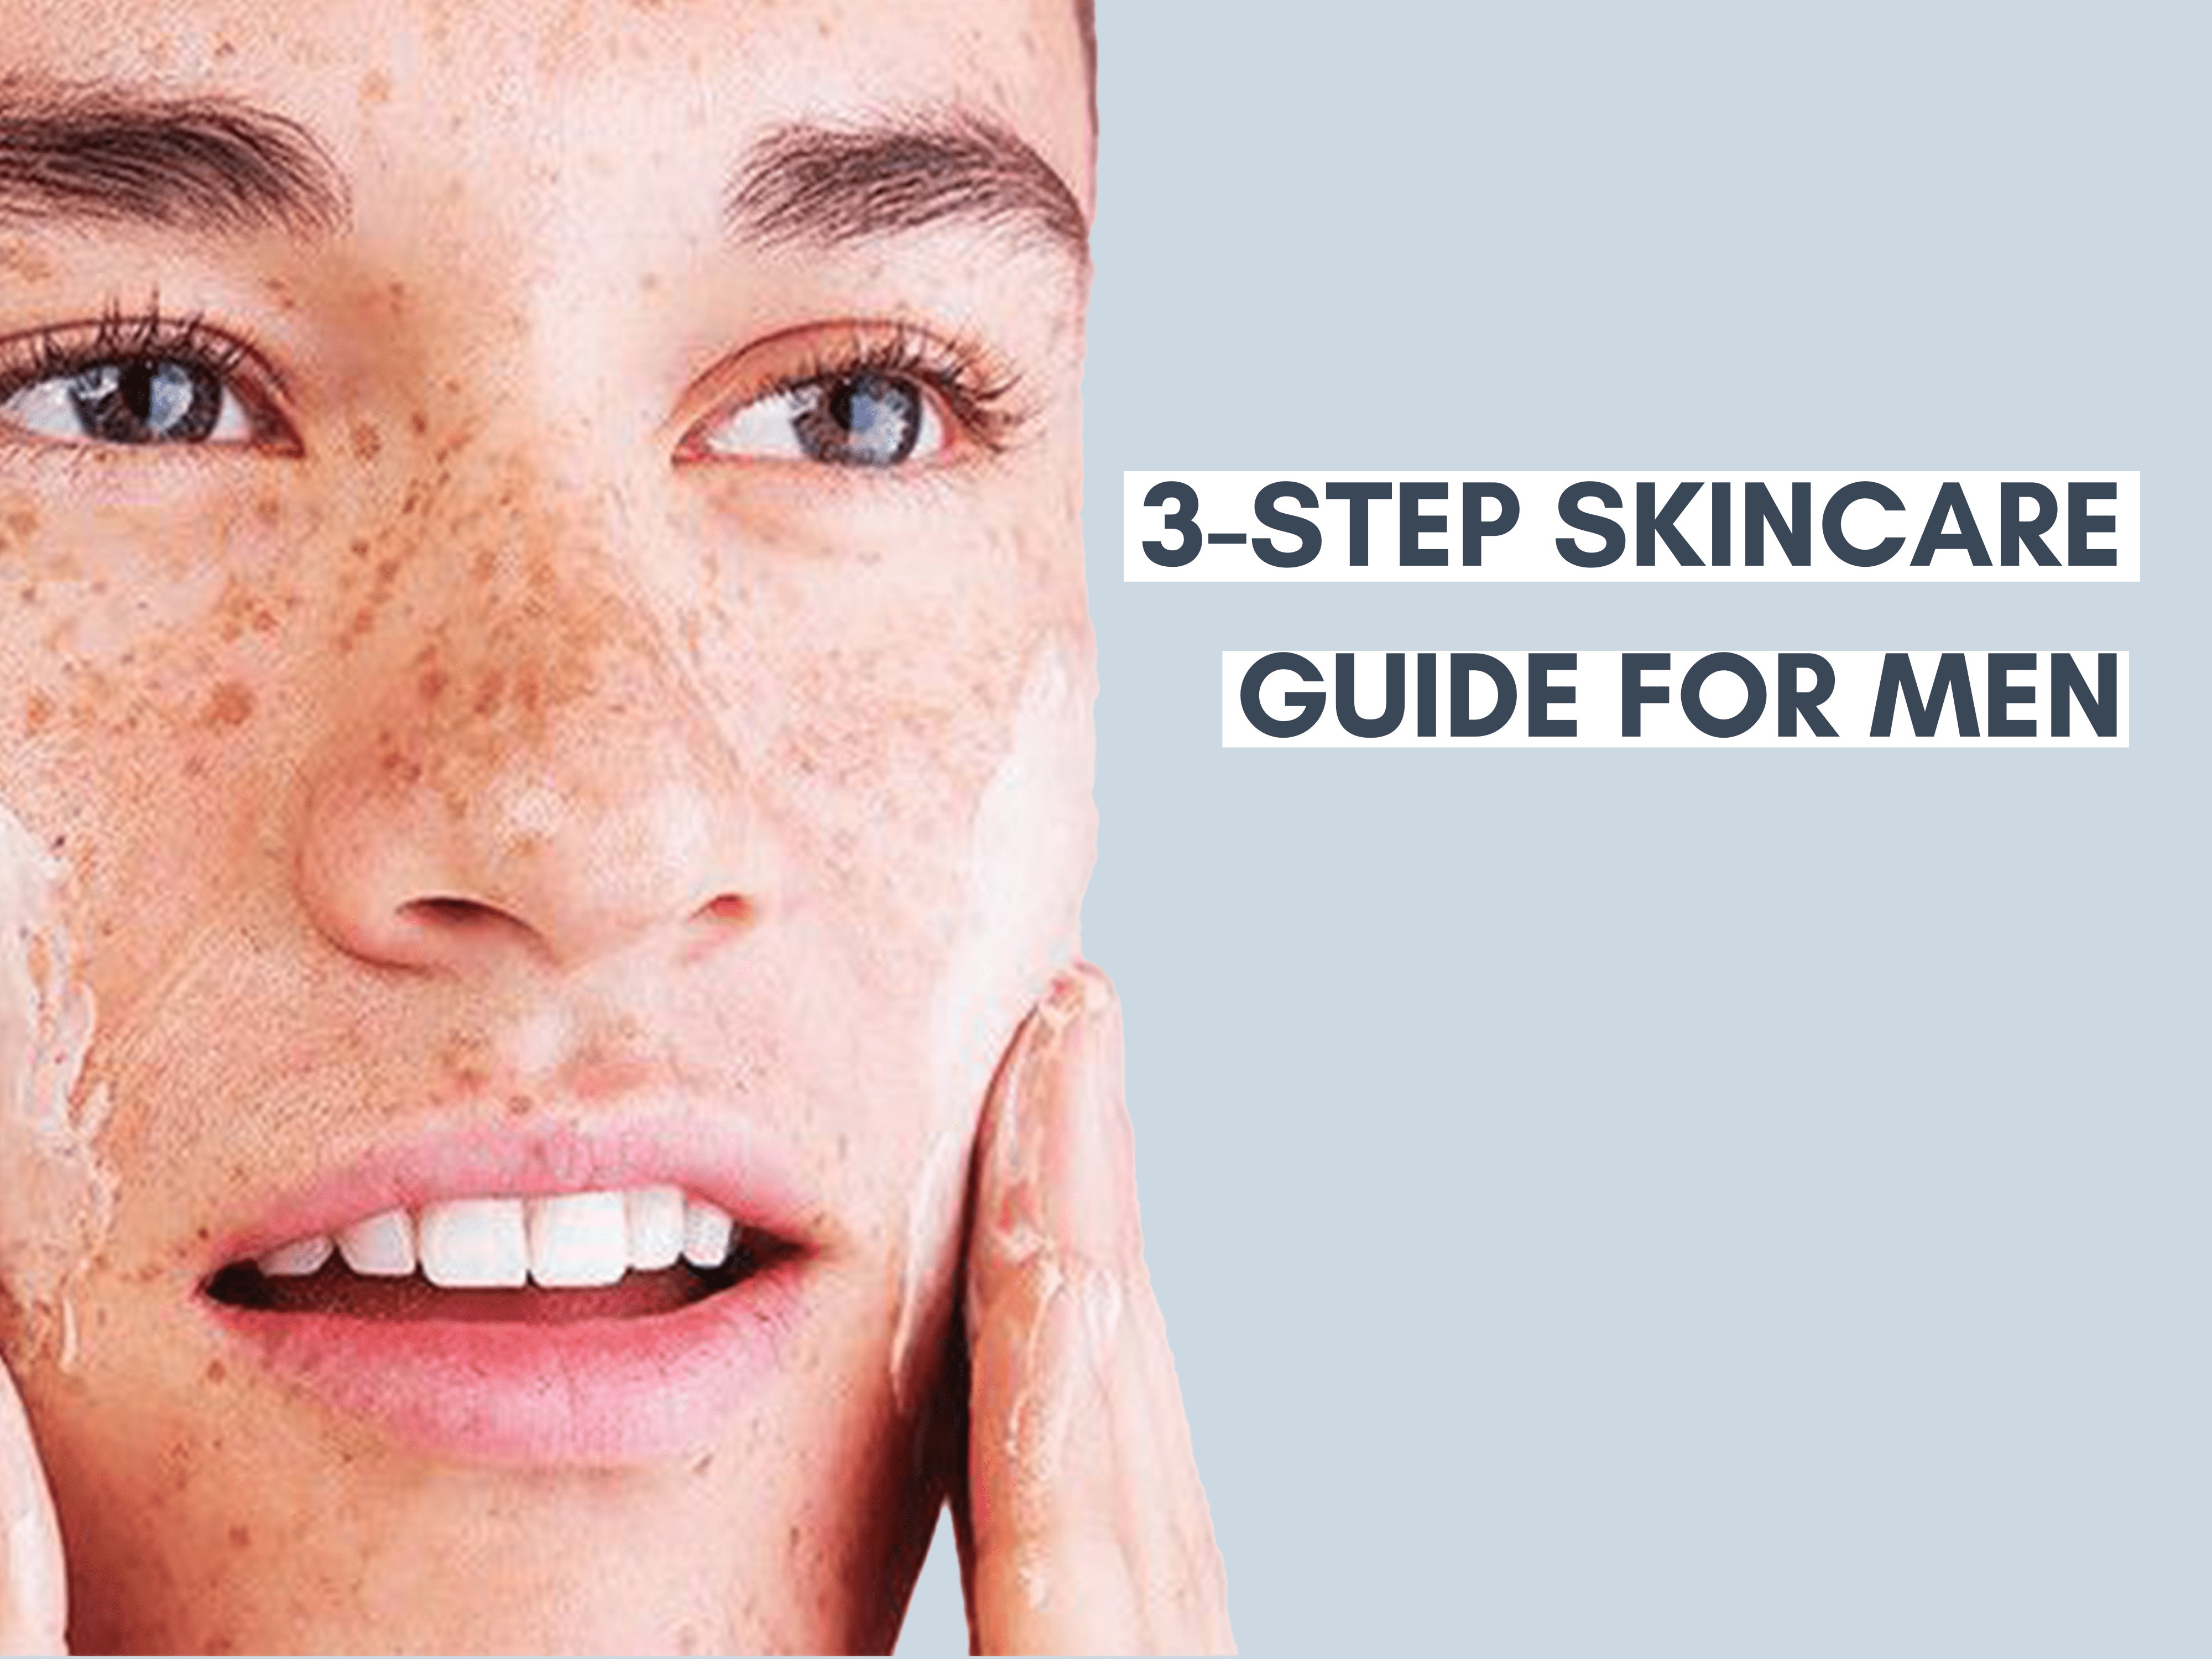 man with pimples applying cream on the cheeks with text: 3 step skincare guide for men